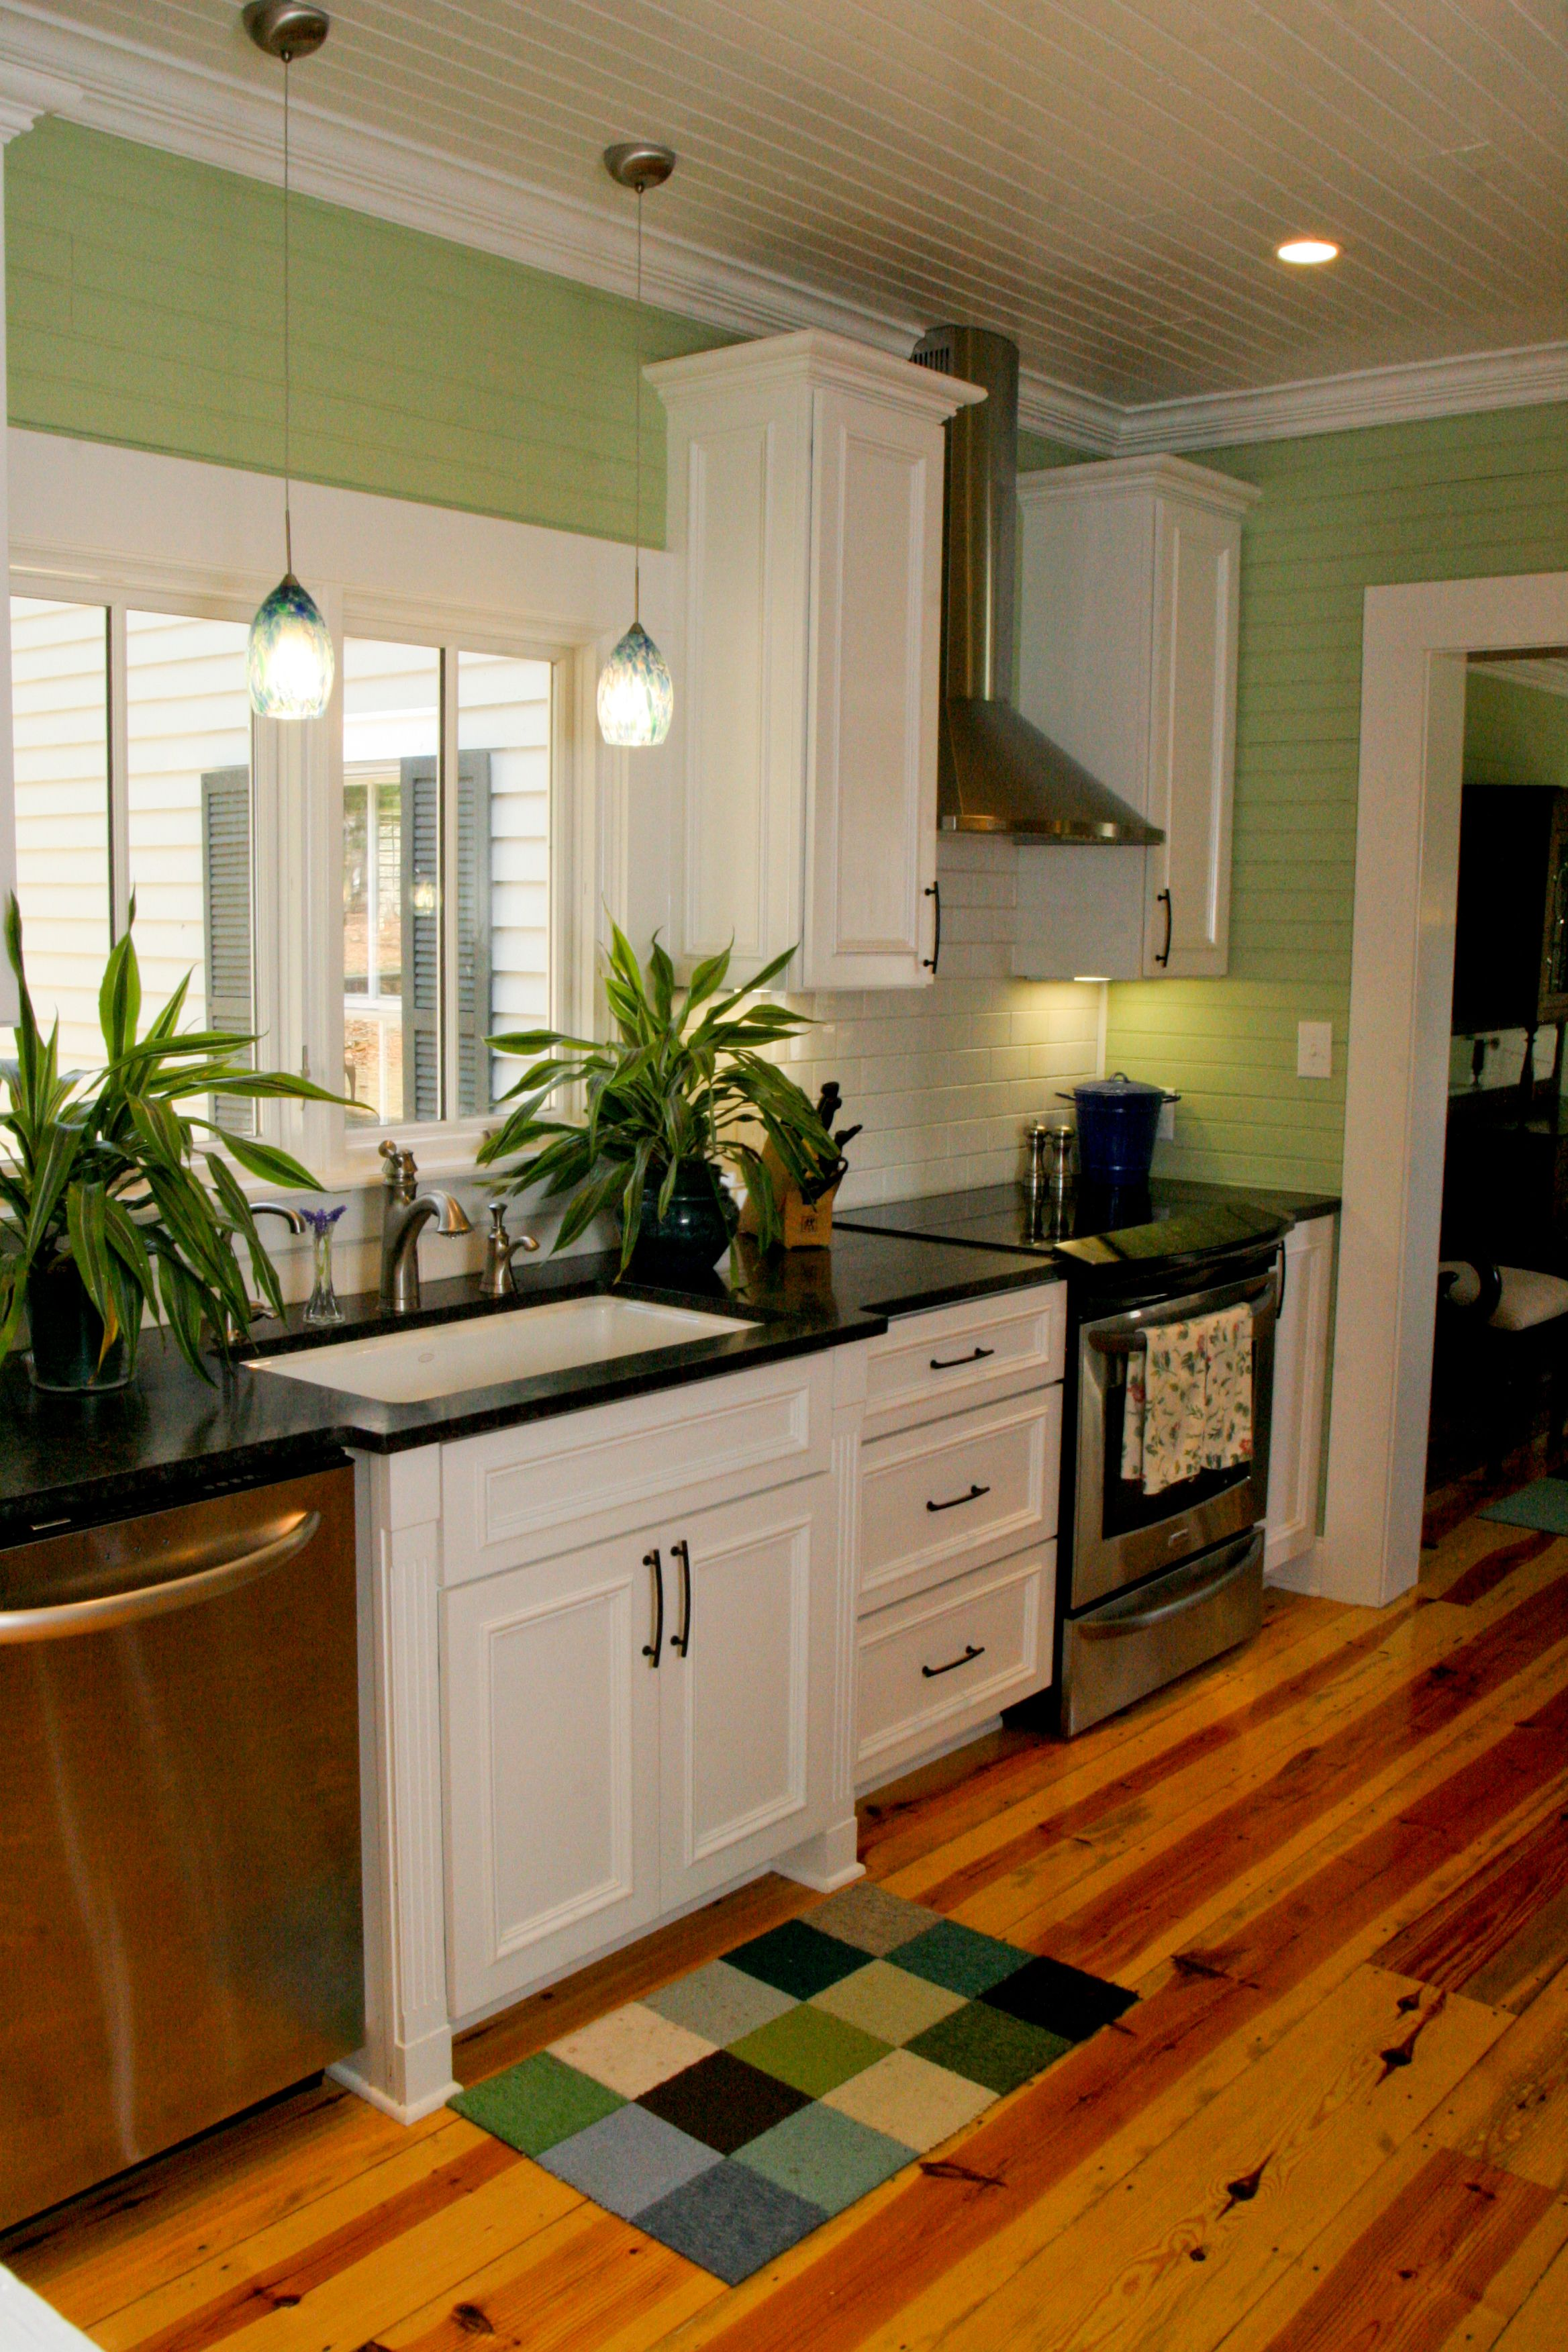 1890s Farmhouse Kitchen Remodel, Forsyth County, NC